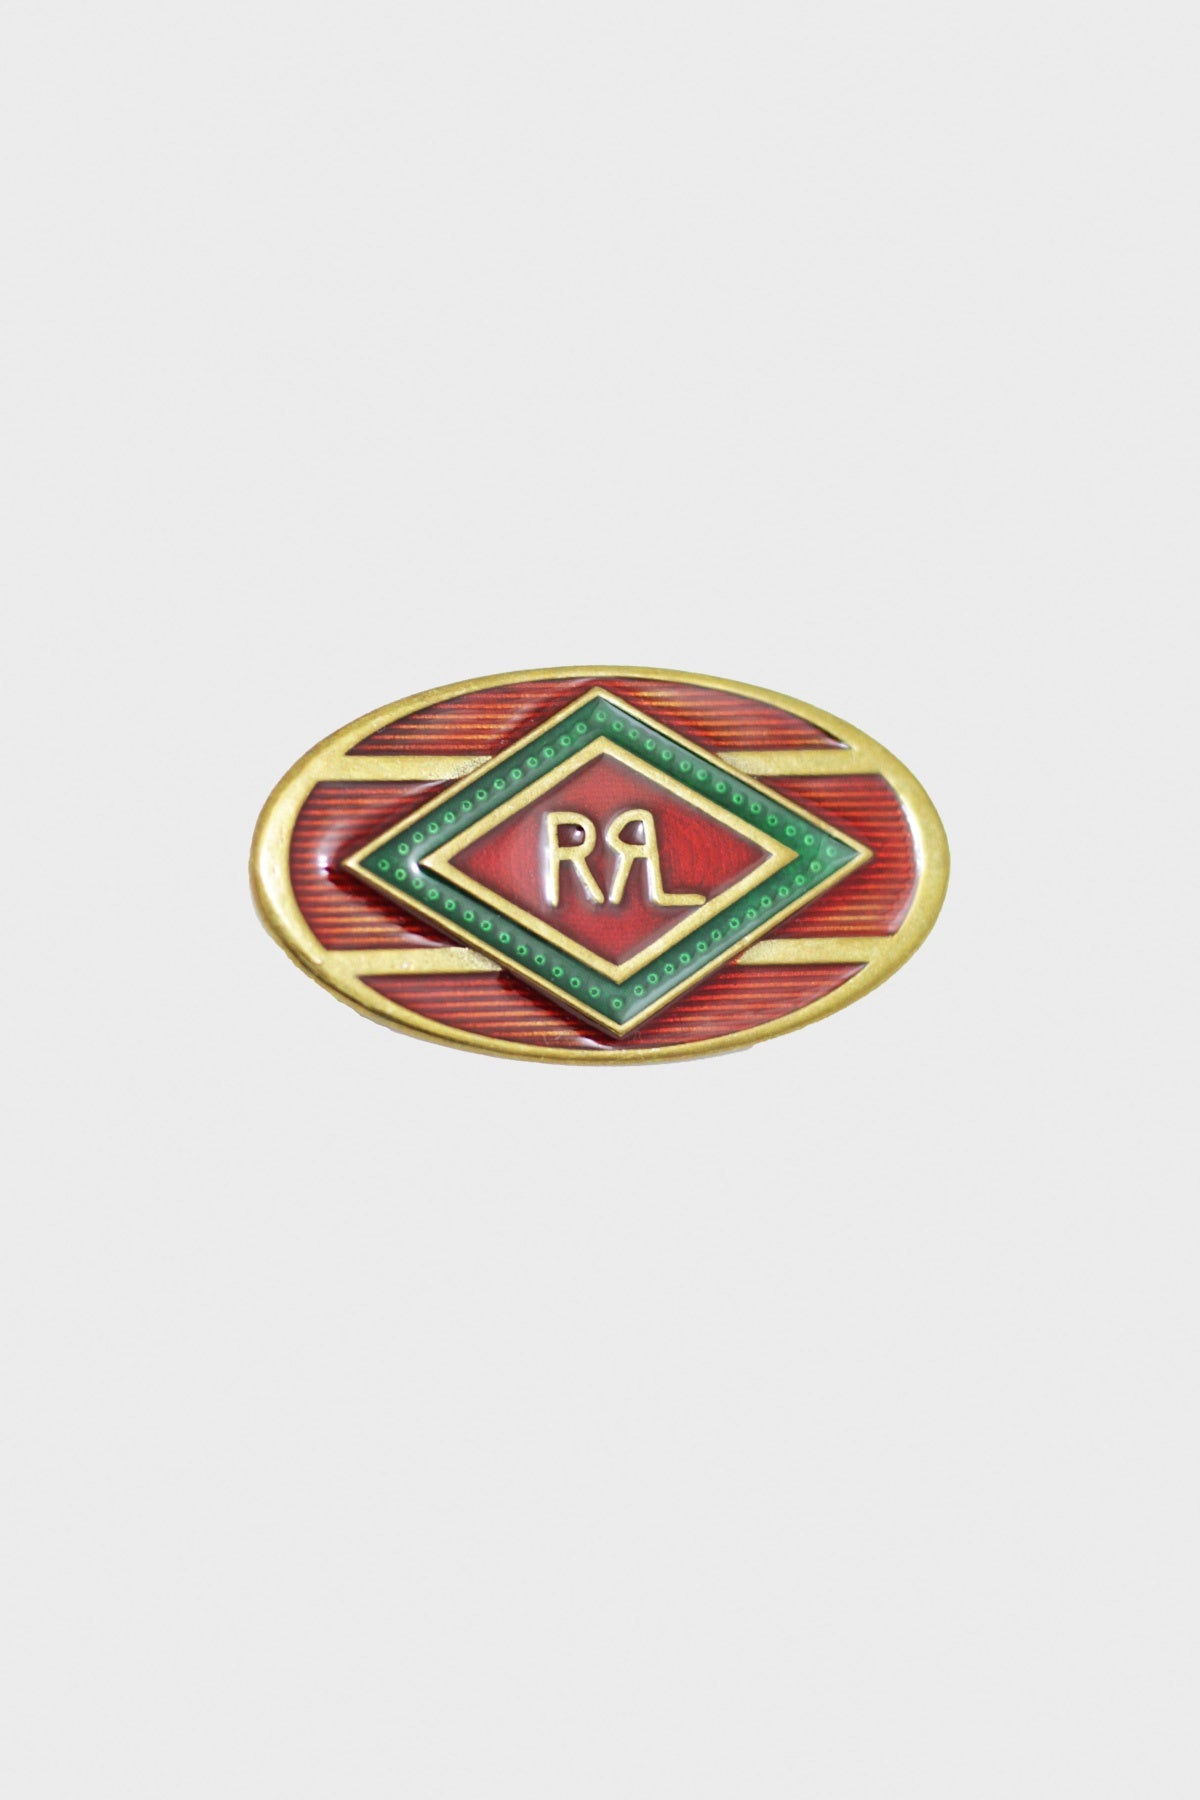 rrl Western Enameled Pin